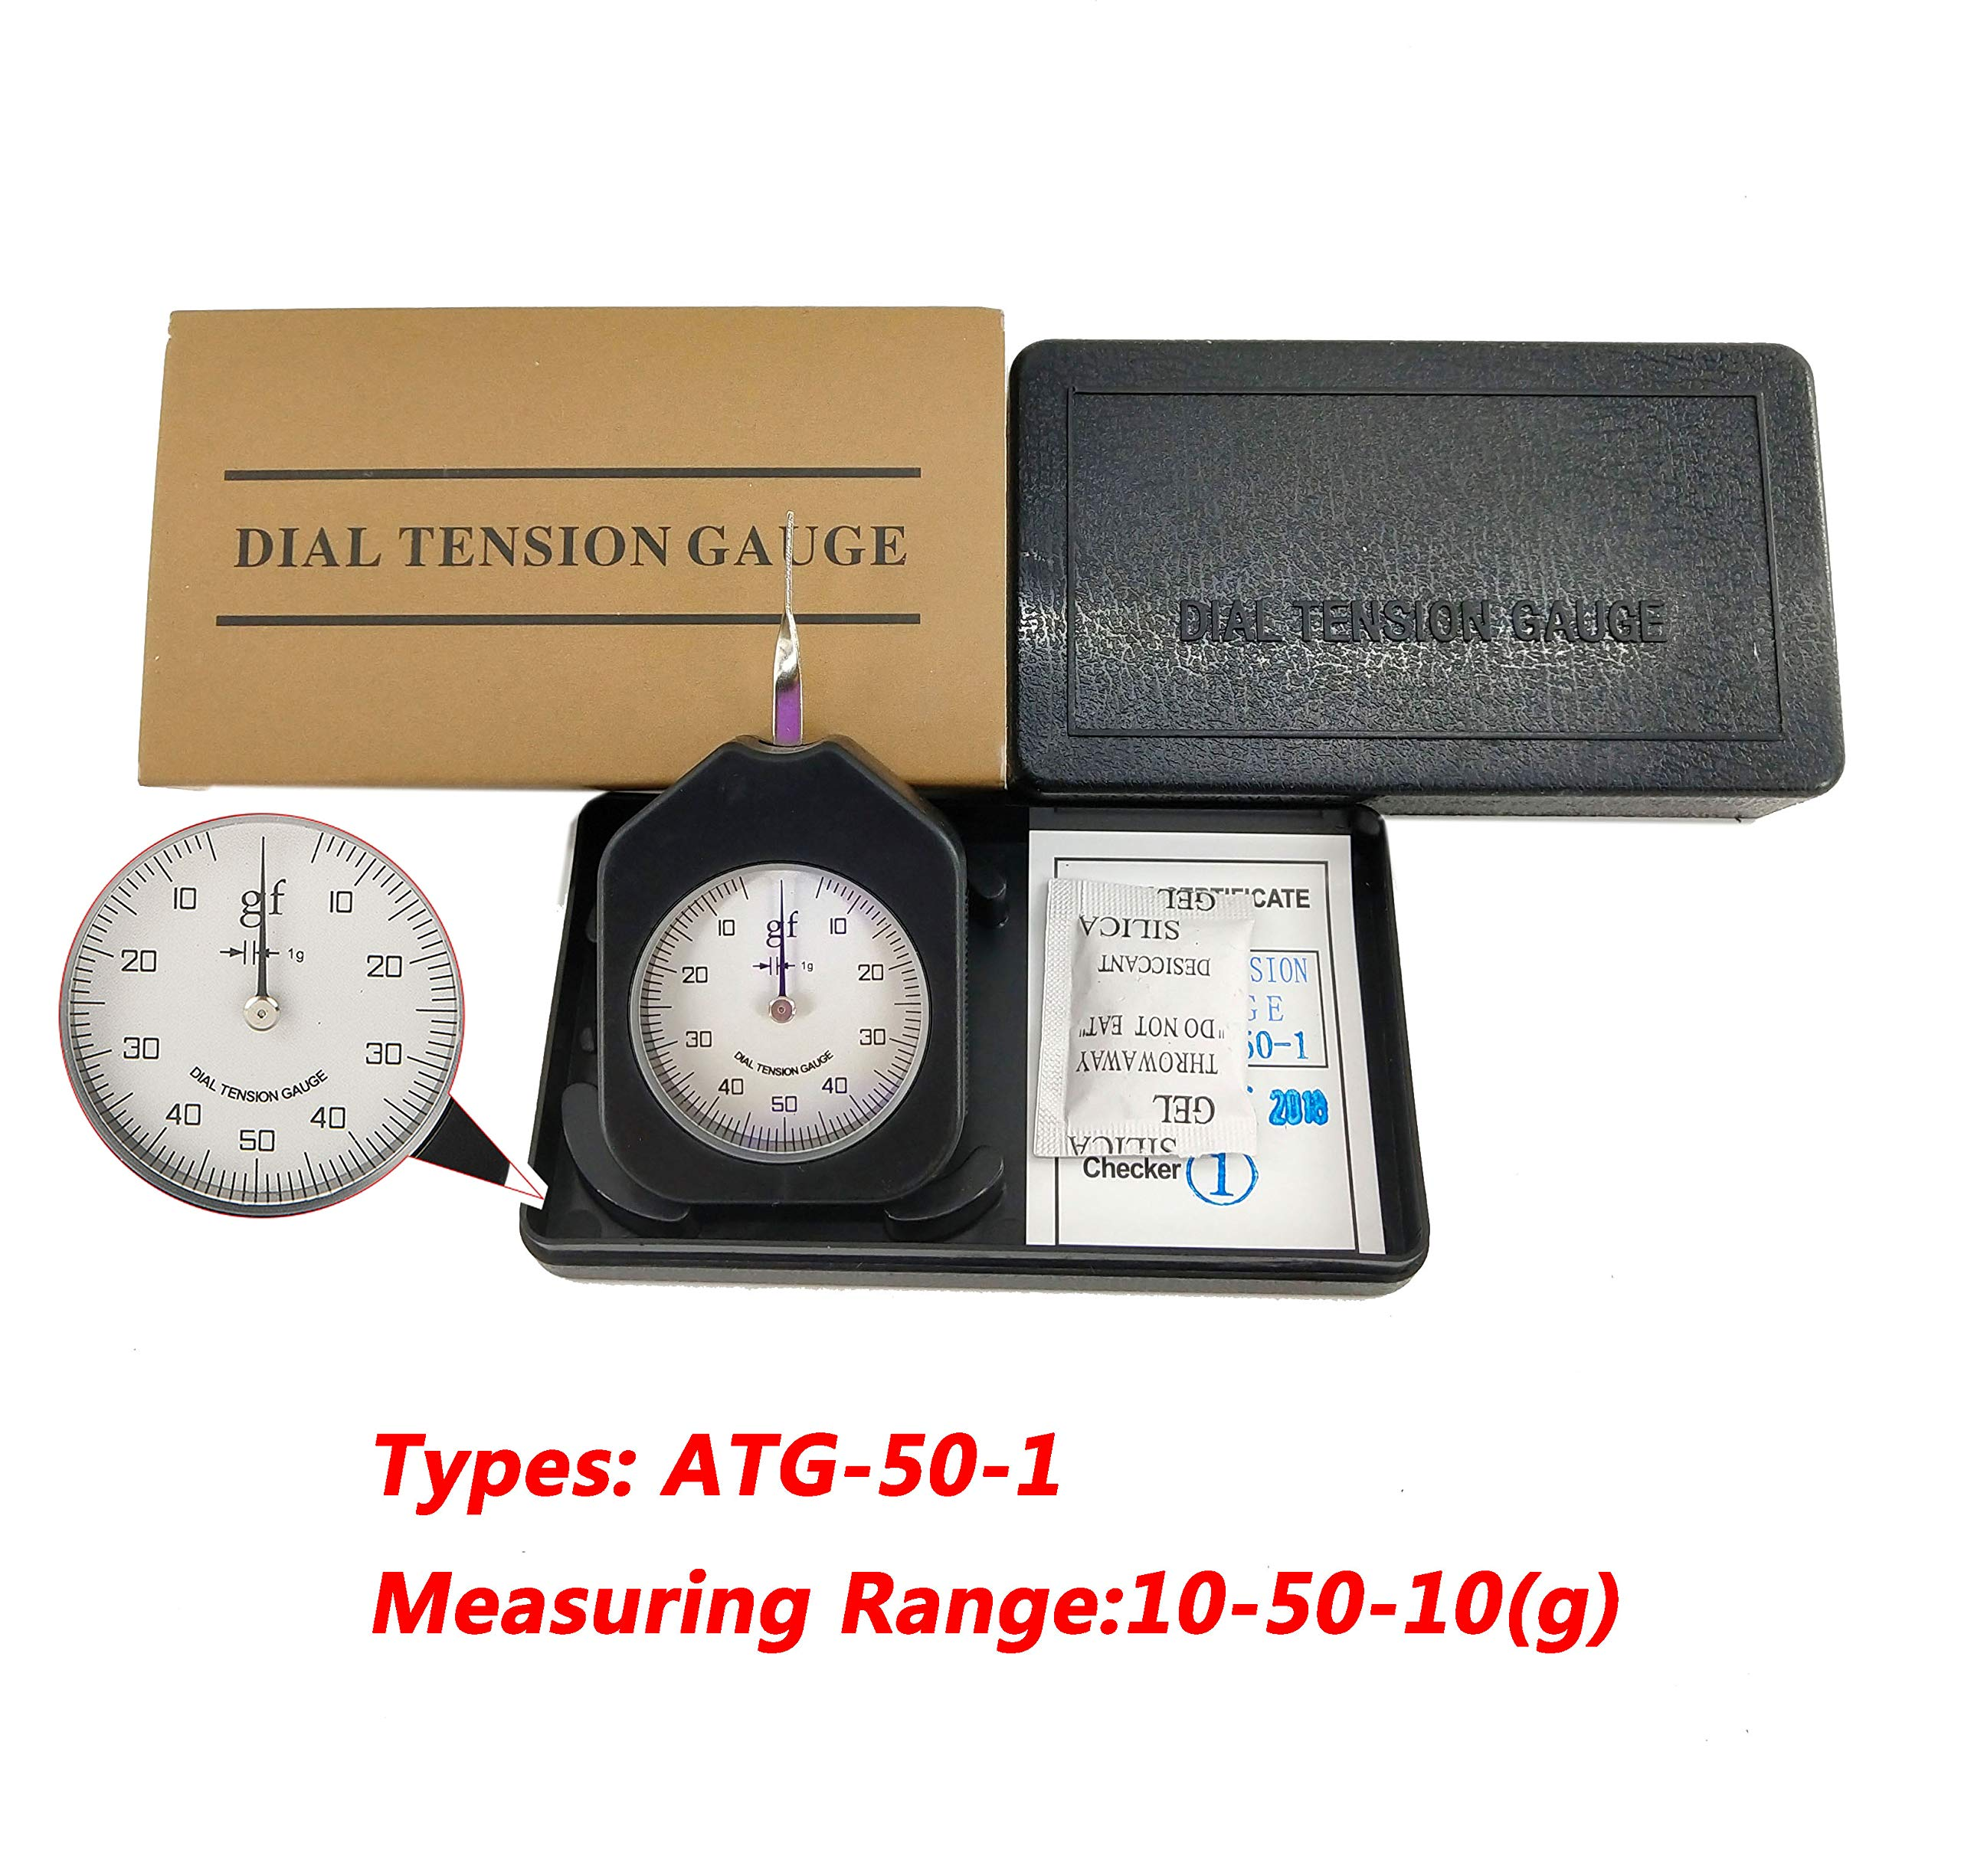 HFBTE ATG-50-1 Pocket Size Type 50g Dial Tensionmeter Tension Gauge with Single Pointer Tension Meter Tester